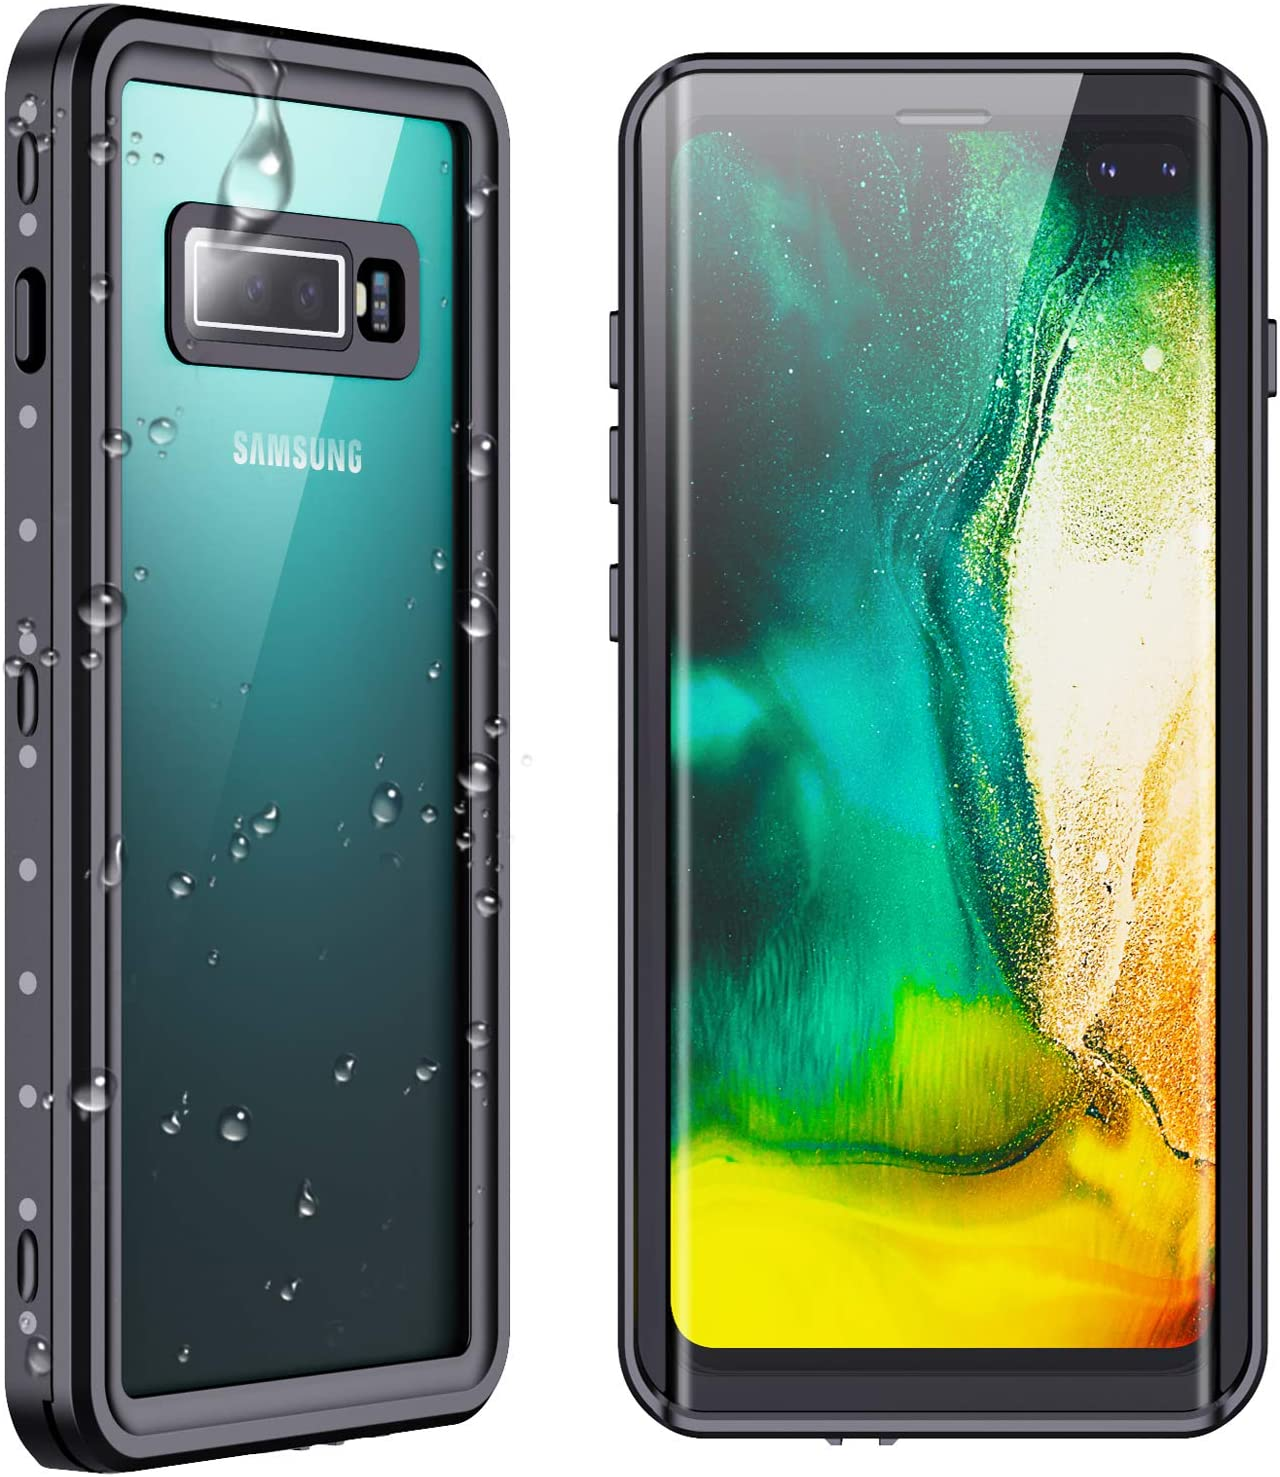 SPIDERCASE Samsung Galaxy S10 Plus S10+ Waterproof Case, Built-in Screen Protector Fingerprint Unlock with Film, Shockproof Full Body Cover Waterproof Case for Samsung Galaxy S10+ Plus 6.4 inch, 2019